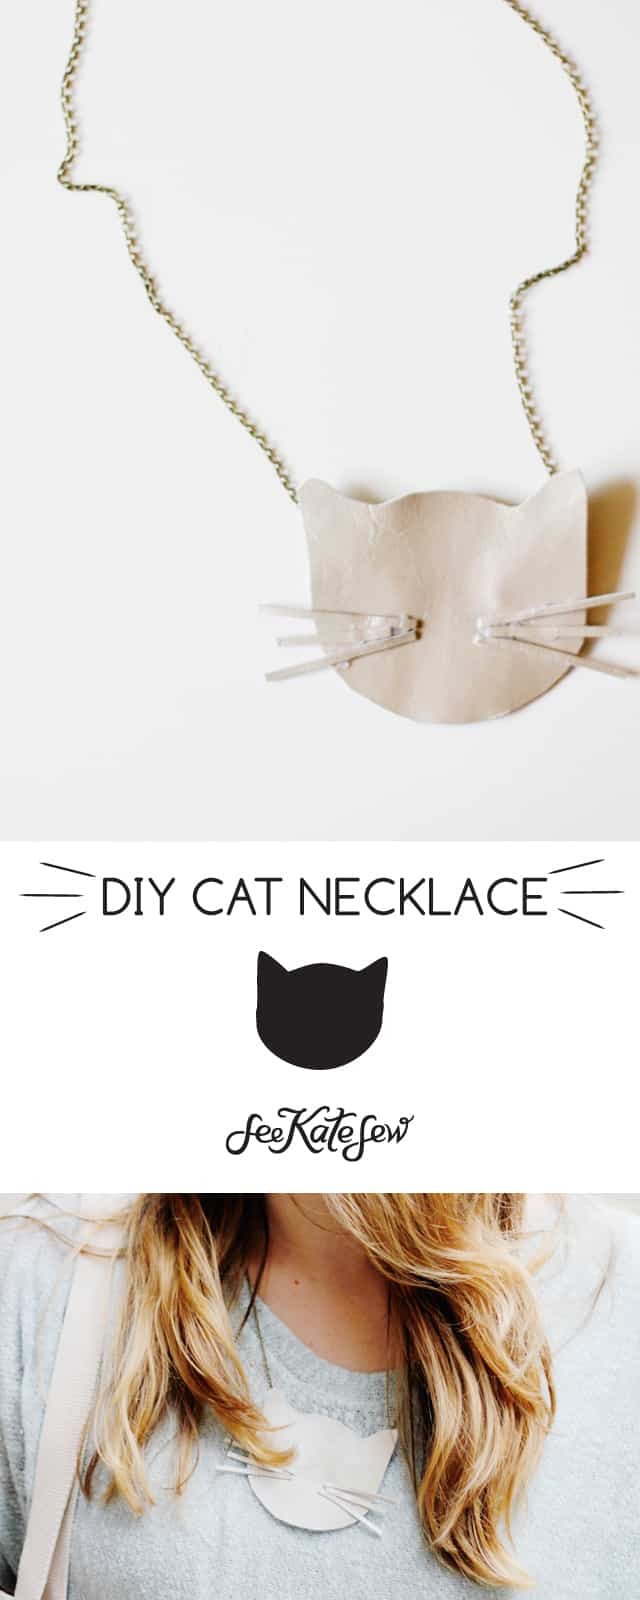 DIY cat necklace